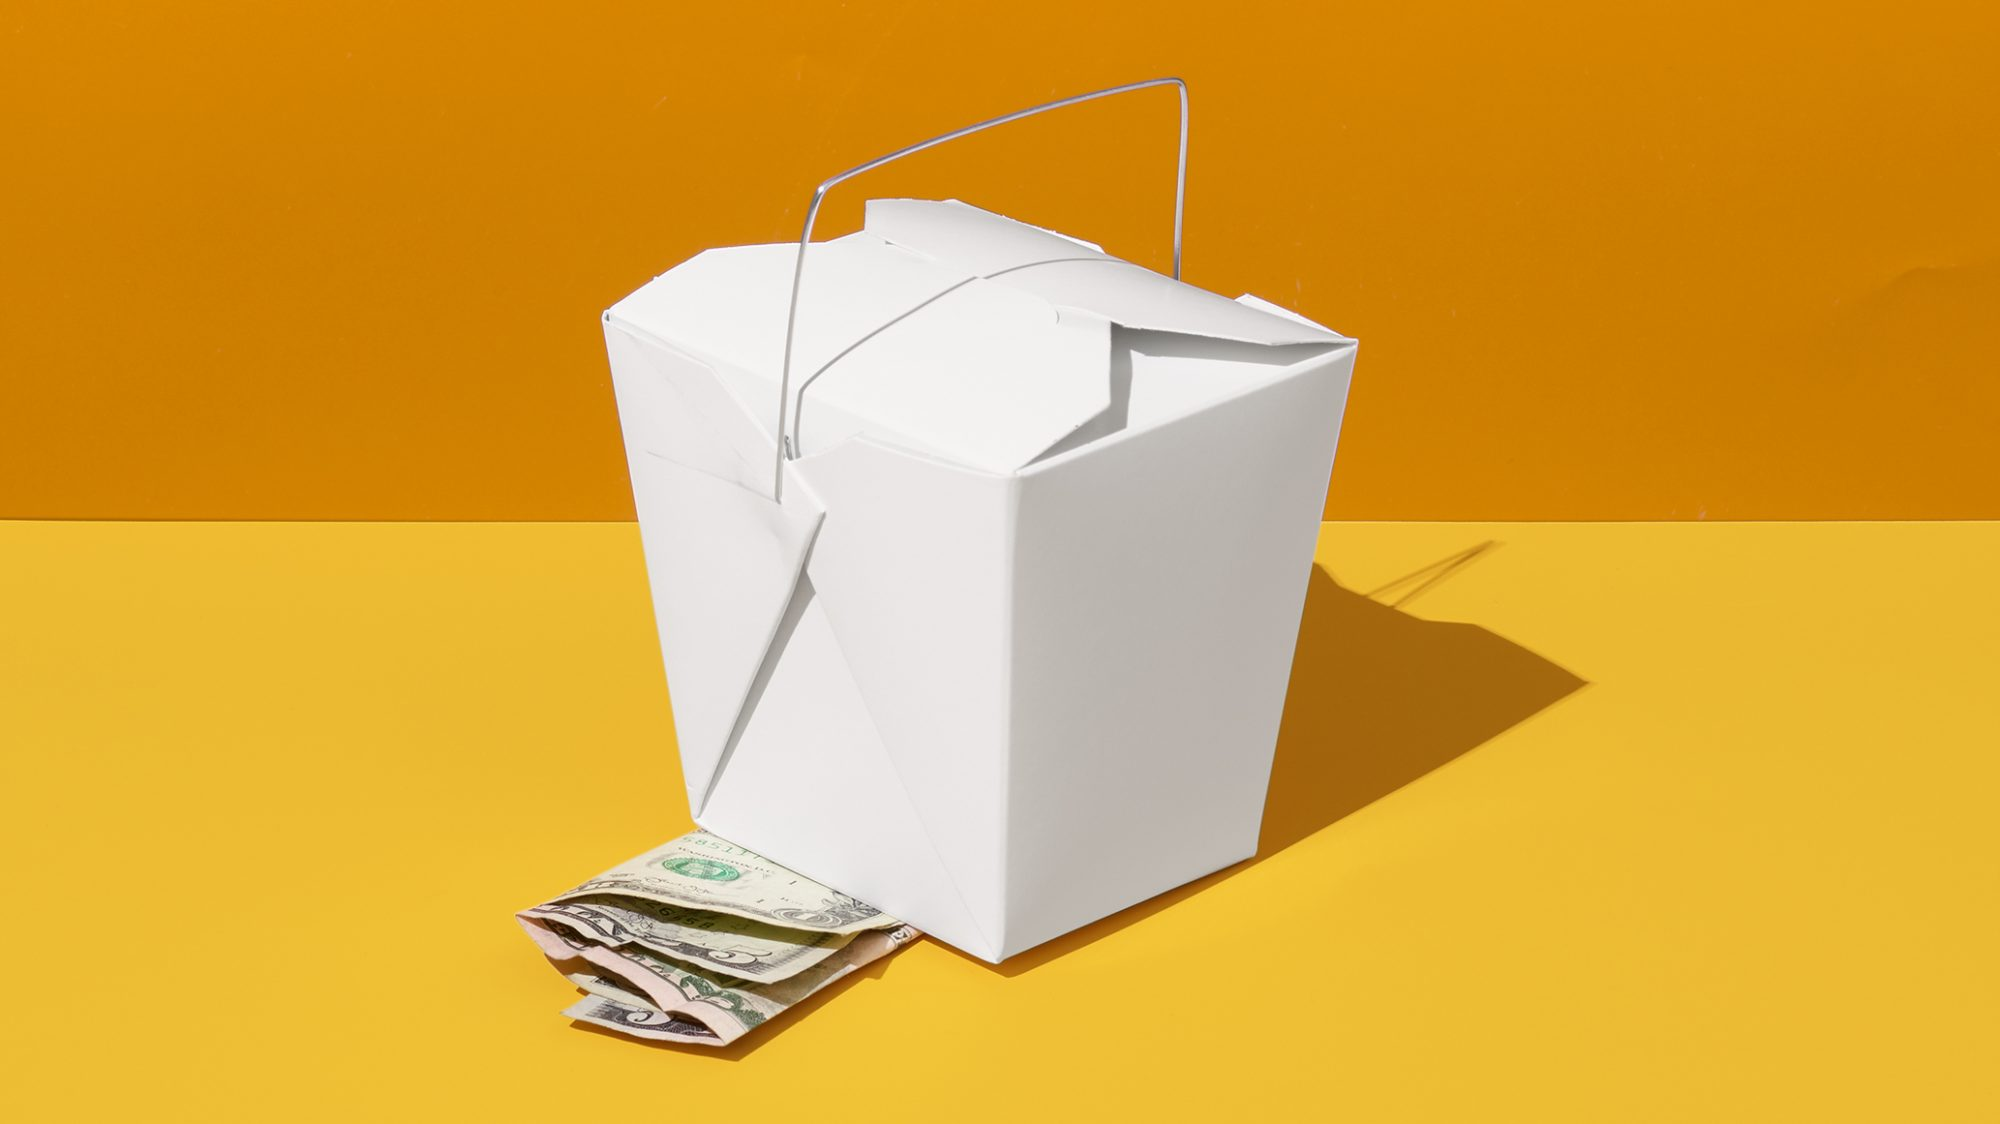 guide to tipping waiters, hairstylists, and more